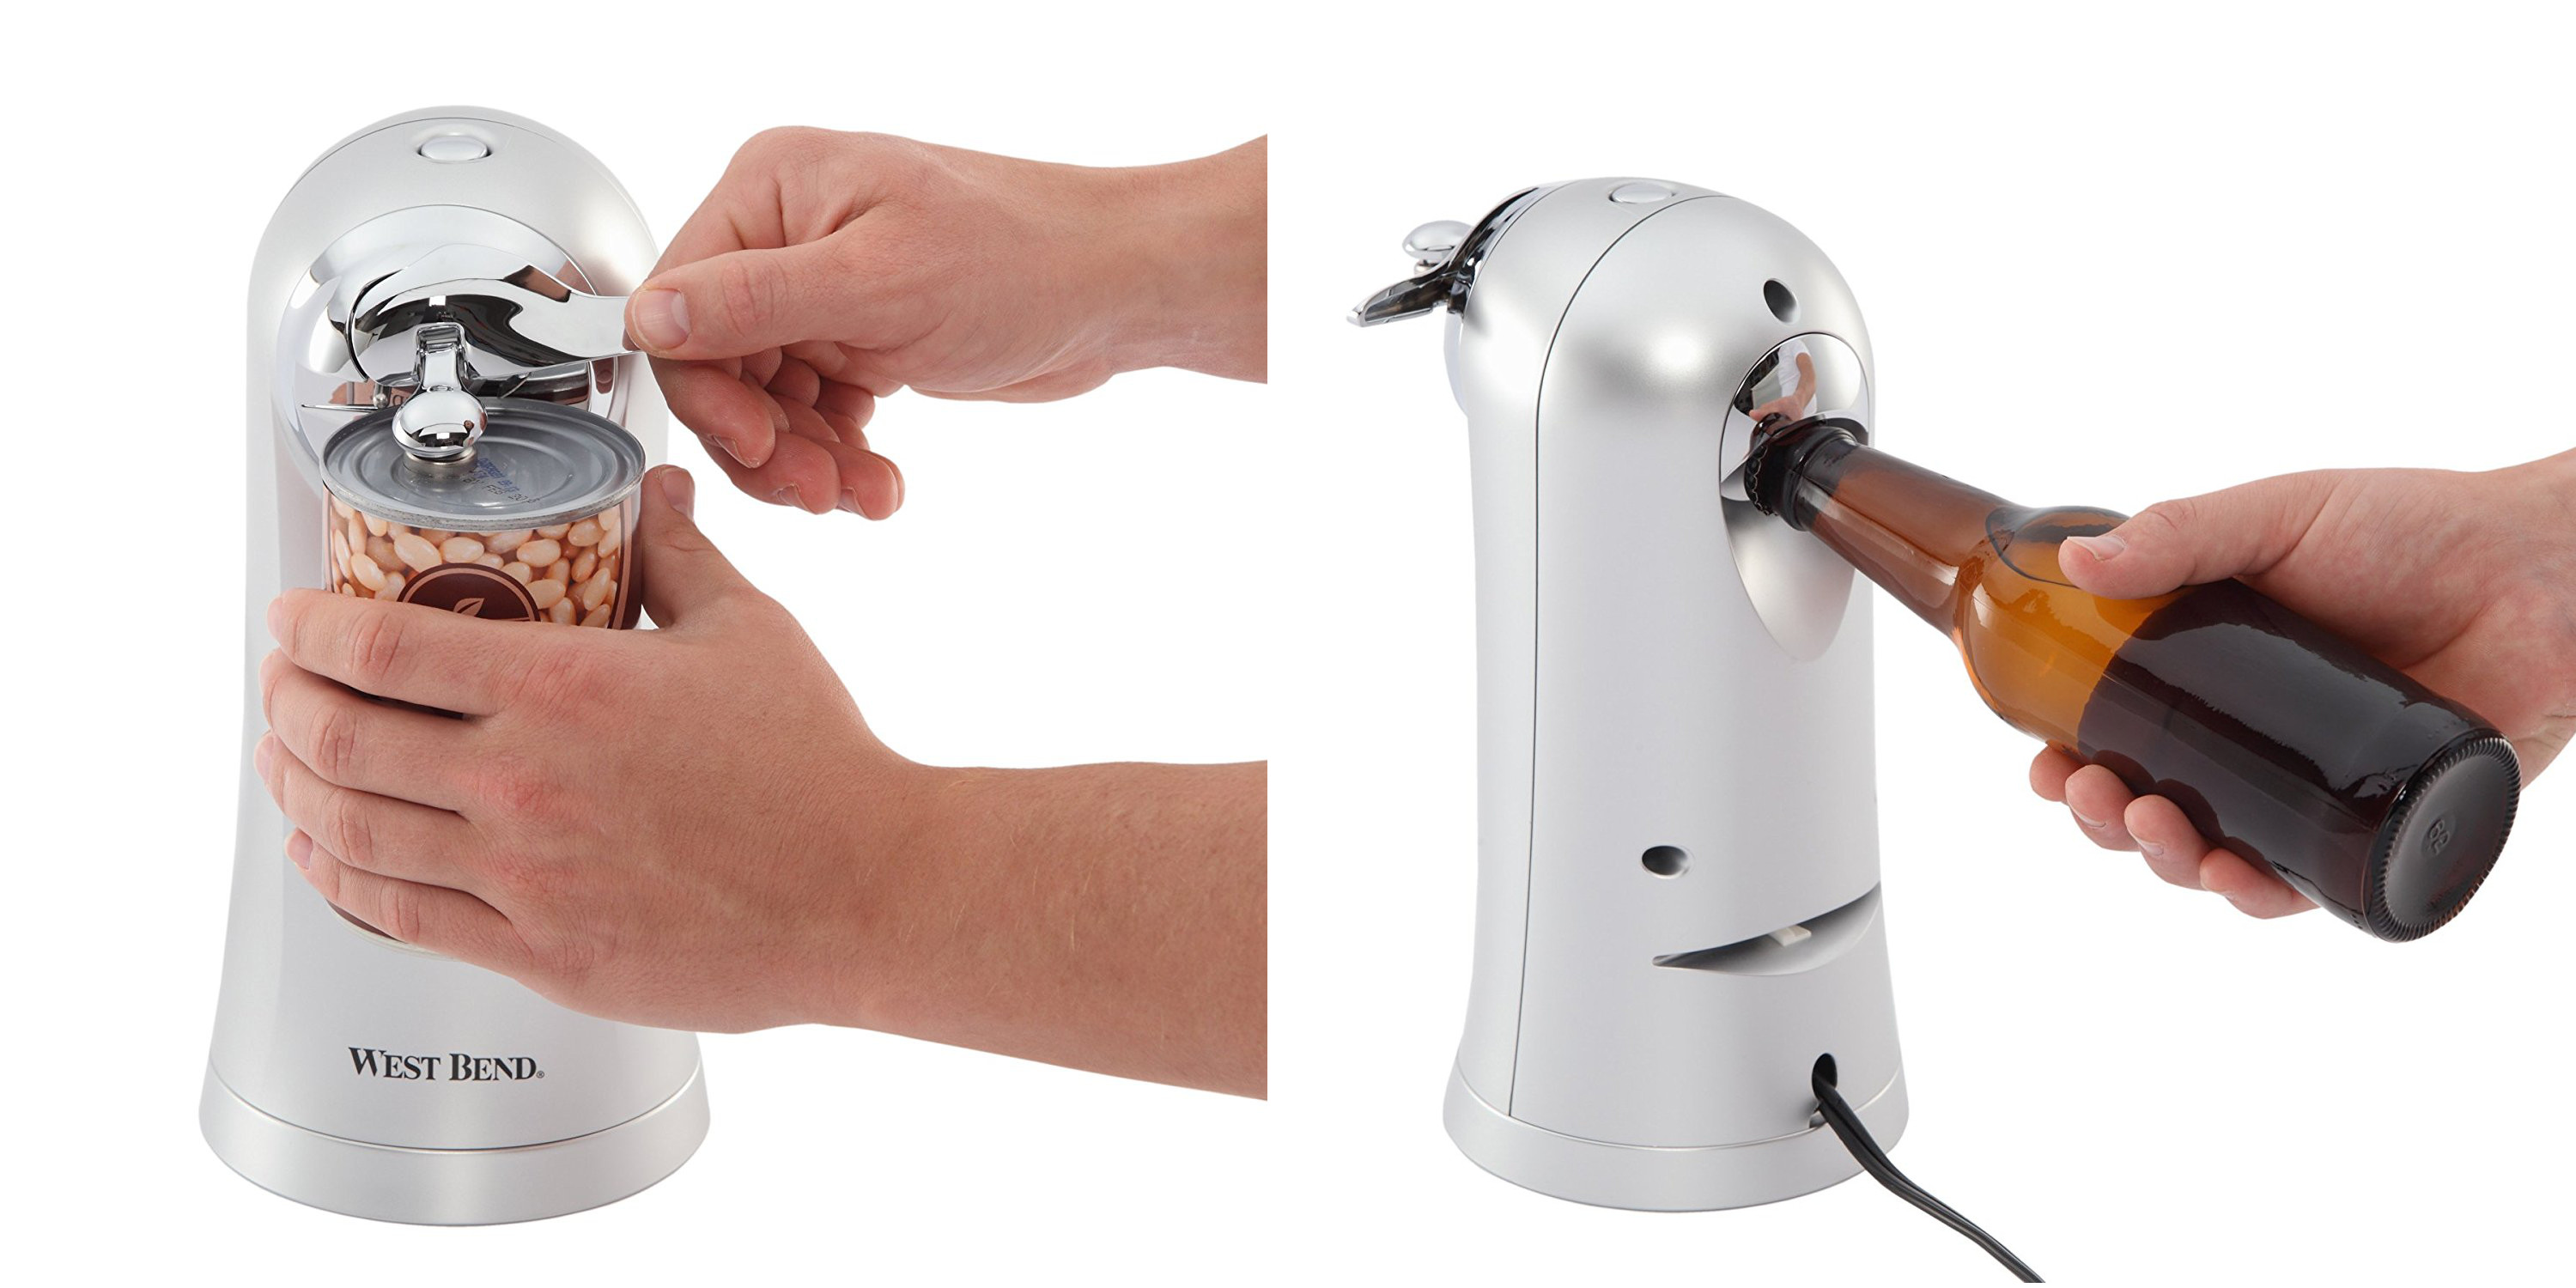 west-bend-electric-can-opener-7